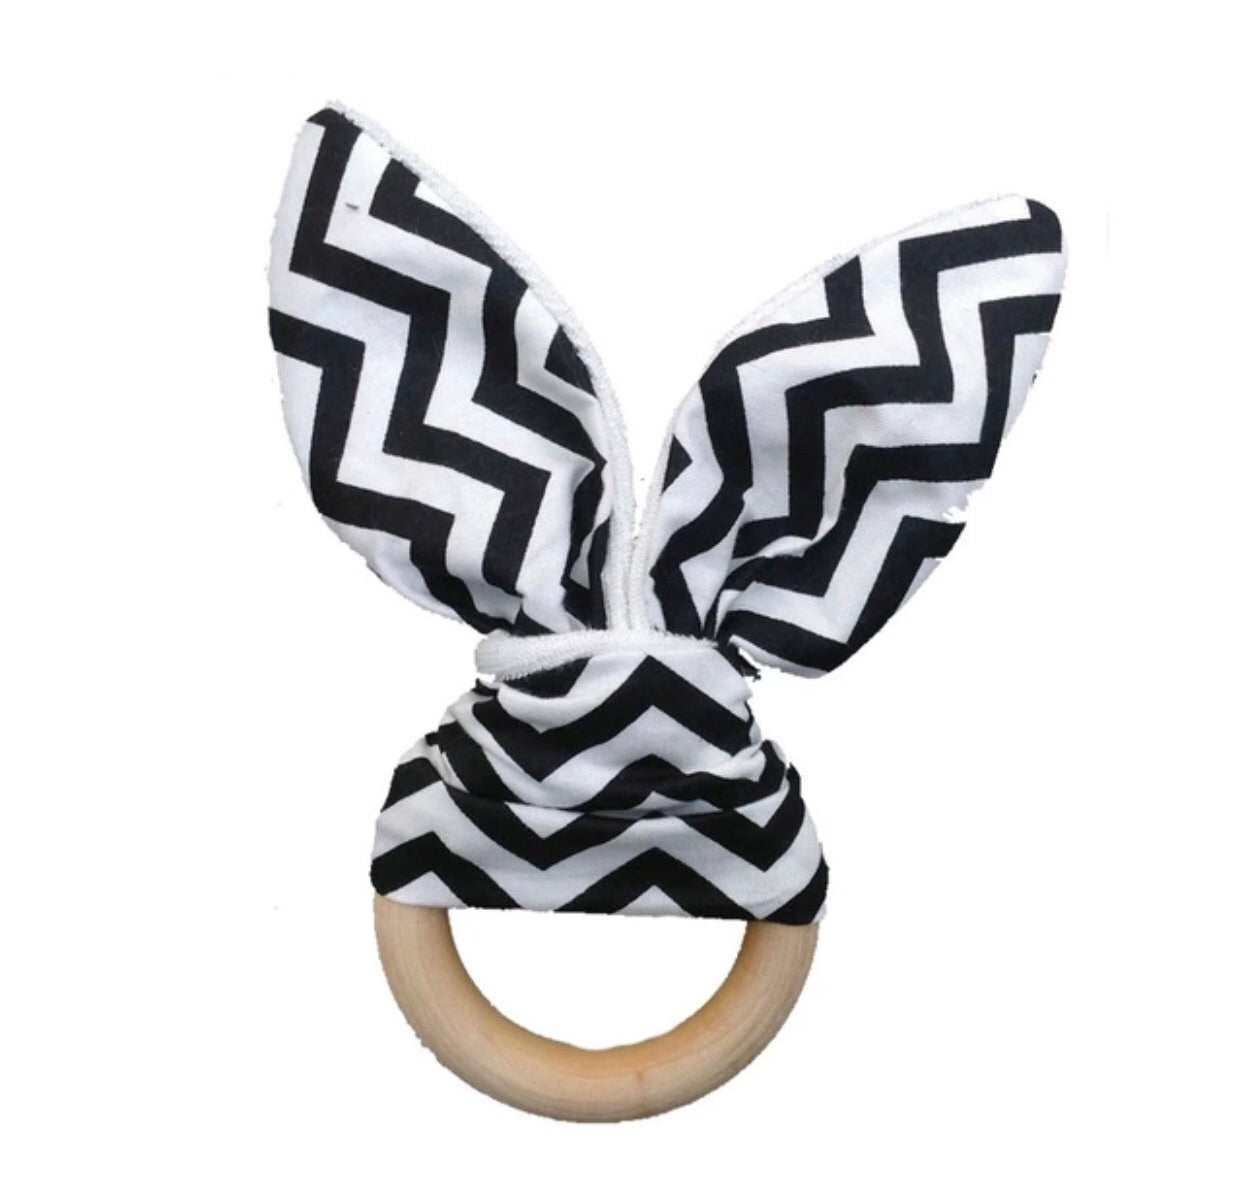 Black Zig Zag Wooden Touch and Feel Toy